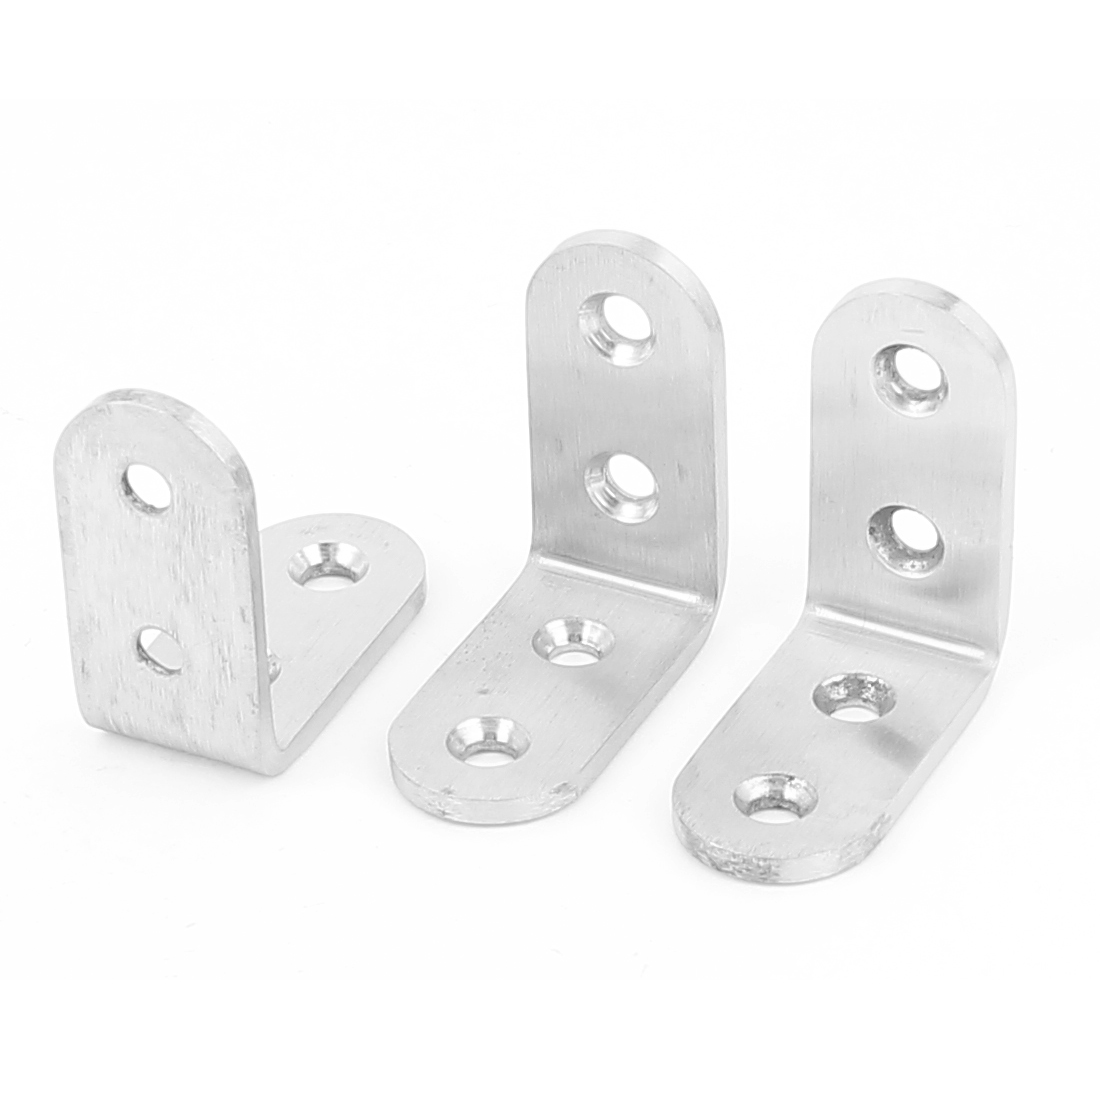 3Pcs L Shape Shelf Support Corner Brace Joint Metal Angle Bracket 40mm x 40mm